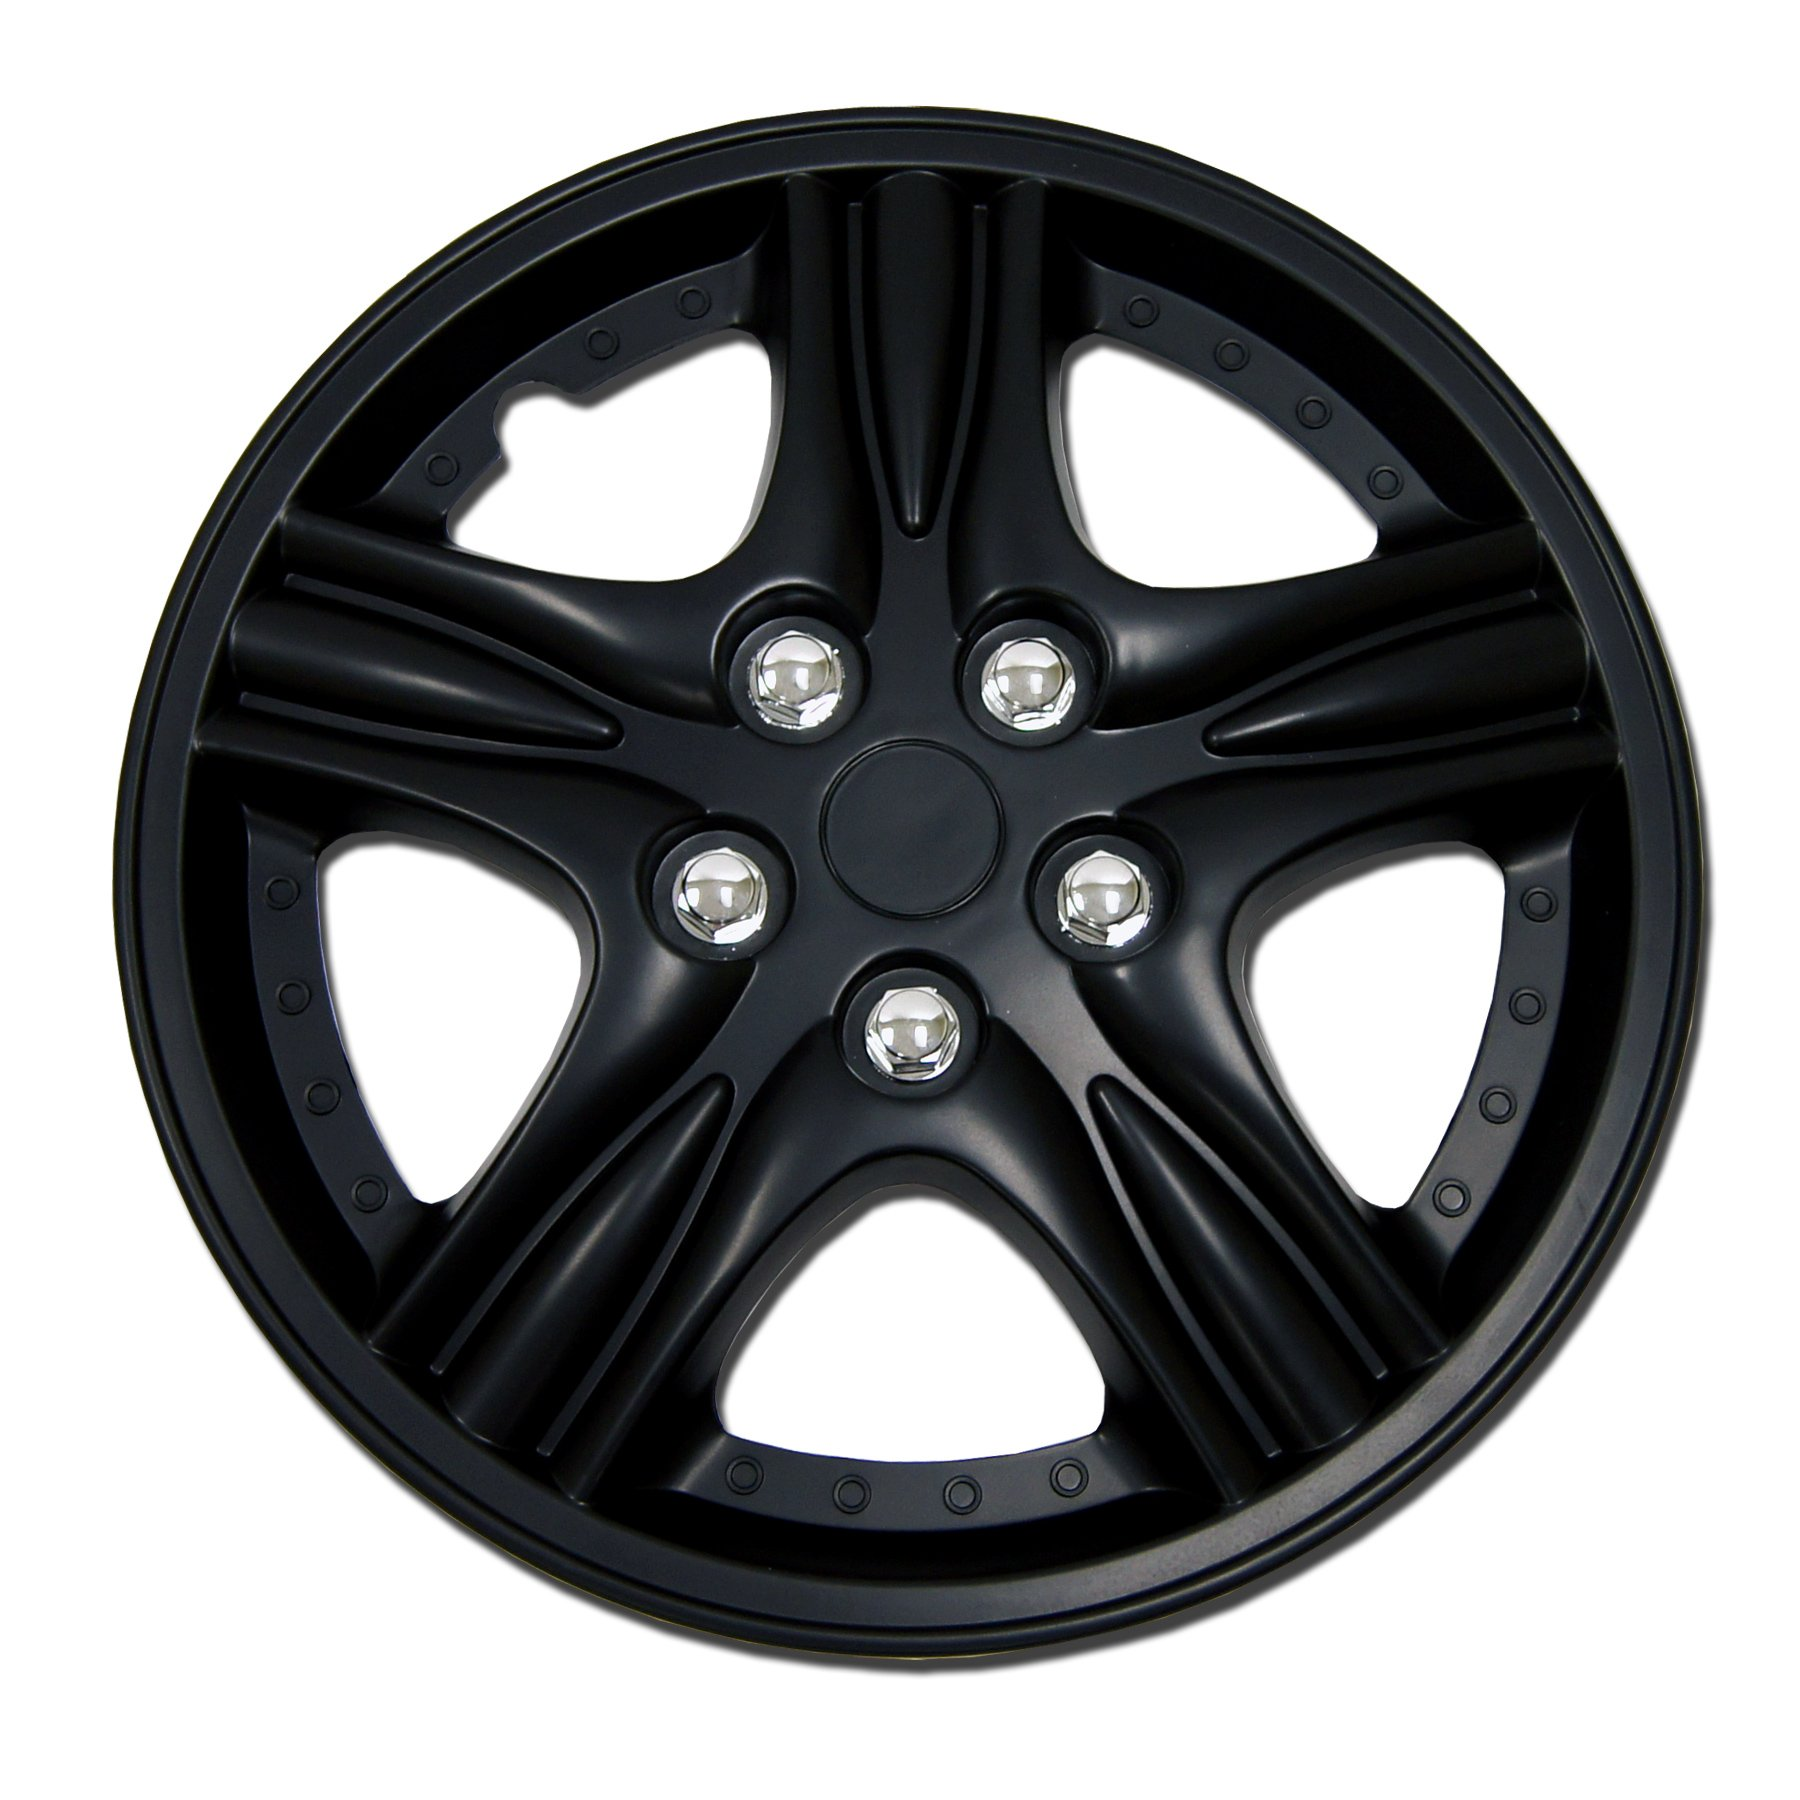 TuningPros WSC-510B15 Hubcaps Wheel Skin Cover 15-Inches Matte Black Set of 4